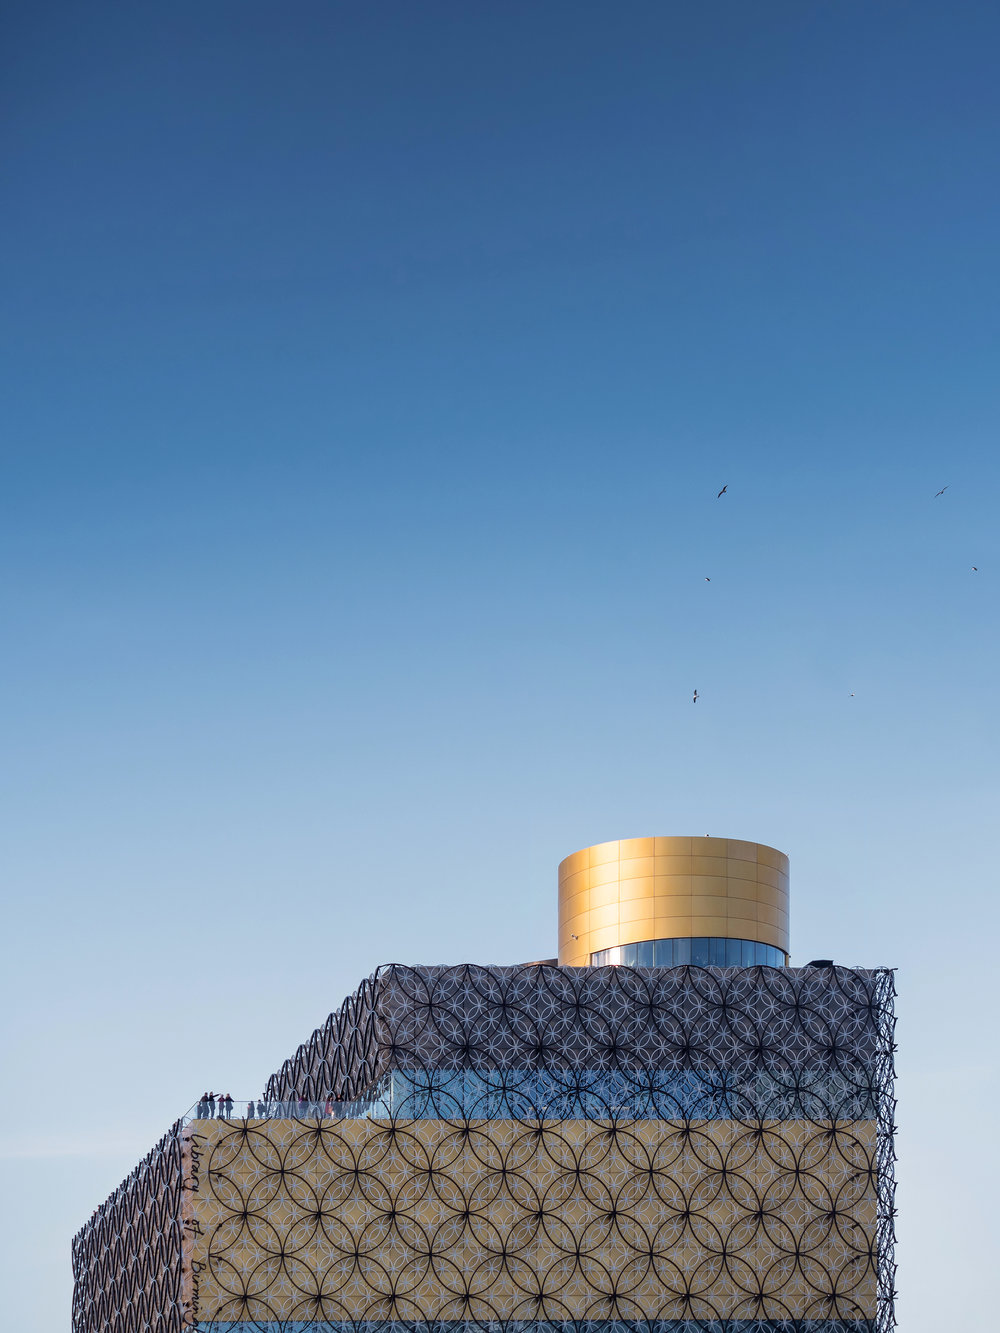 Library of Birmingham. Photography: Copyright © Alex Upton